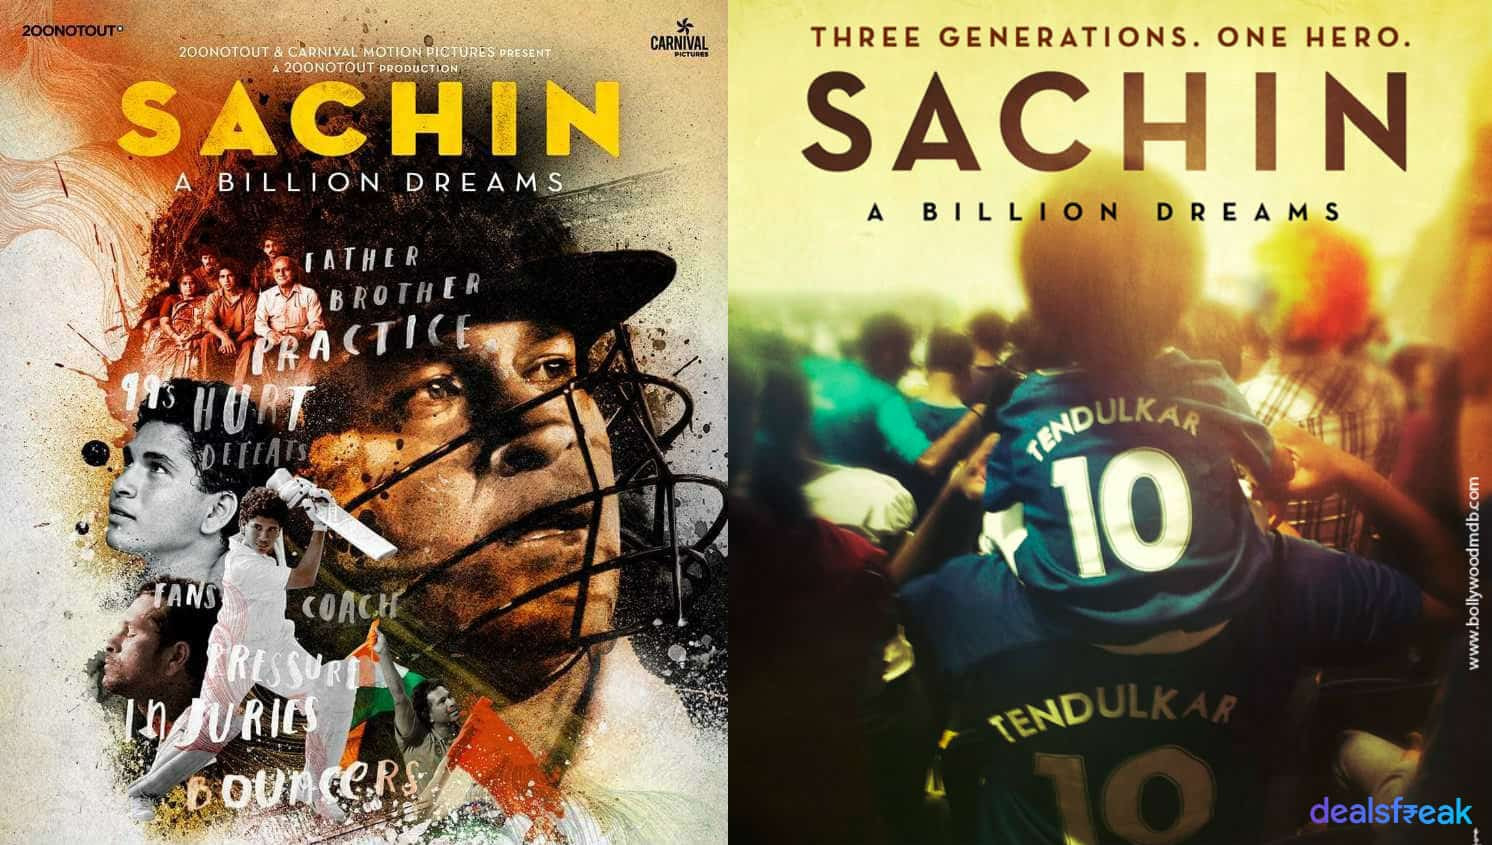 Sachin-a-billion-dream-movie-poster